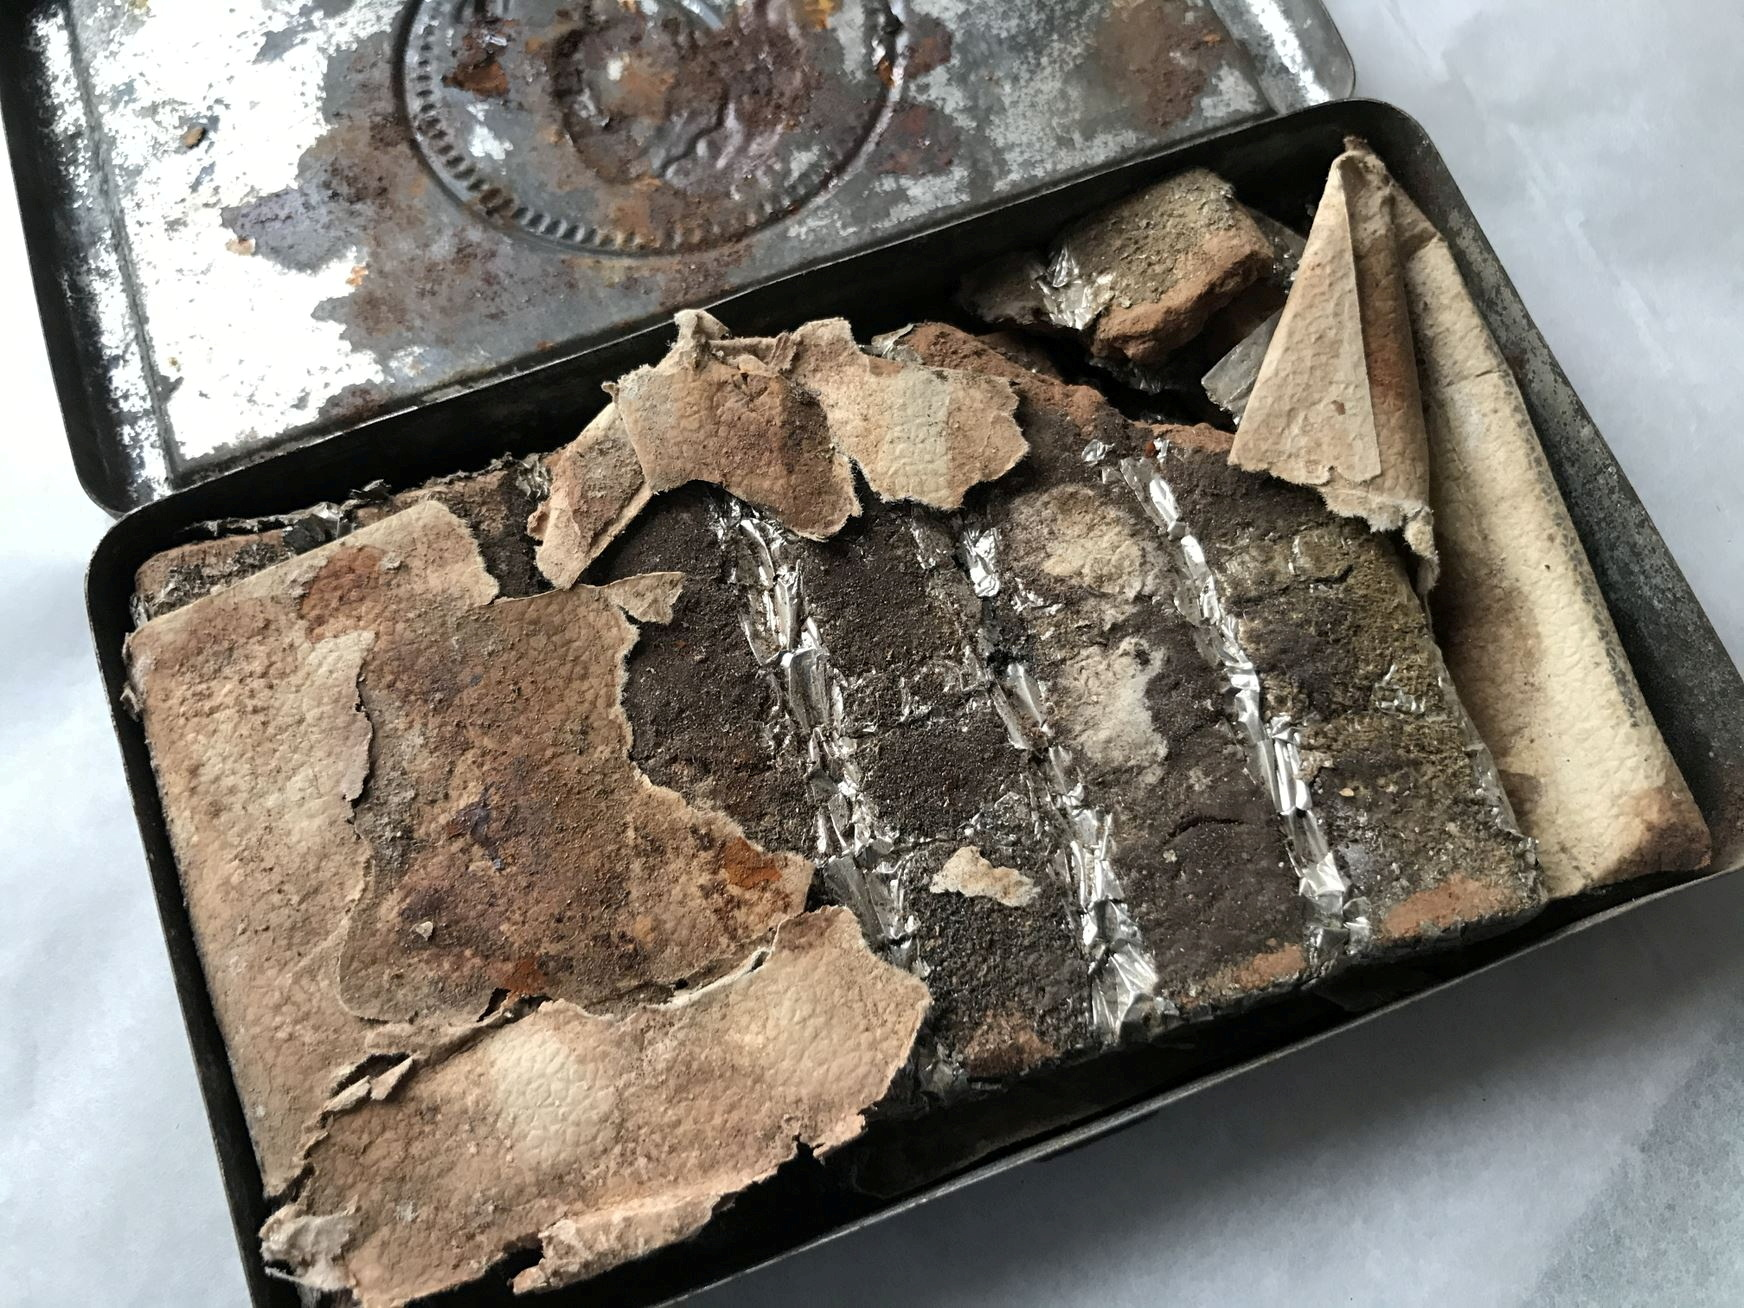 A 121-year-old chocolate bar from a batch commissioned by Queen Victoria for British troops fighting in South Africa is seen in an undated photo at Oxburgh Hall, a manor house in Norfolk, Britain where it was found in the attic. National Trust/Victoria McKeown/Handout via REUTERS  THIS IMAGE HAS BEEN SUPPLIED BY A THIRD PARTY. MANDATORY CREDIT. NO RESALES. NO ARCHIVES